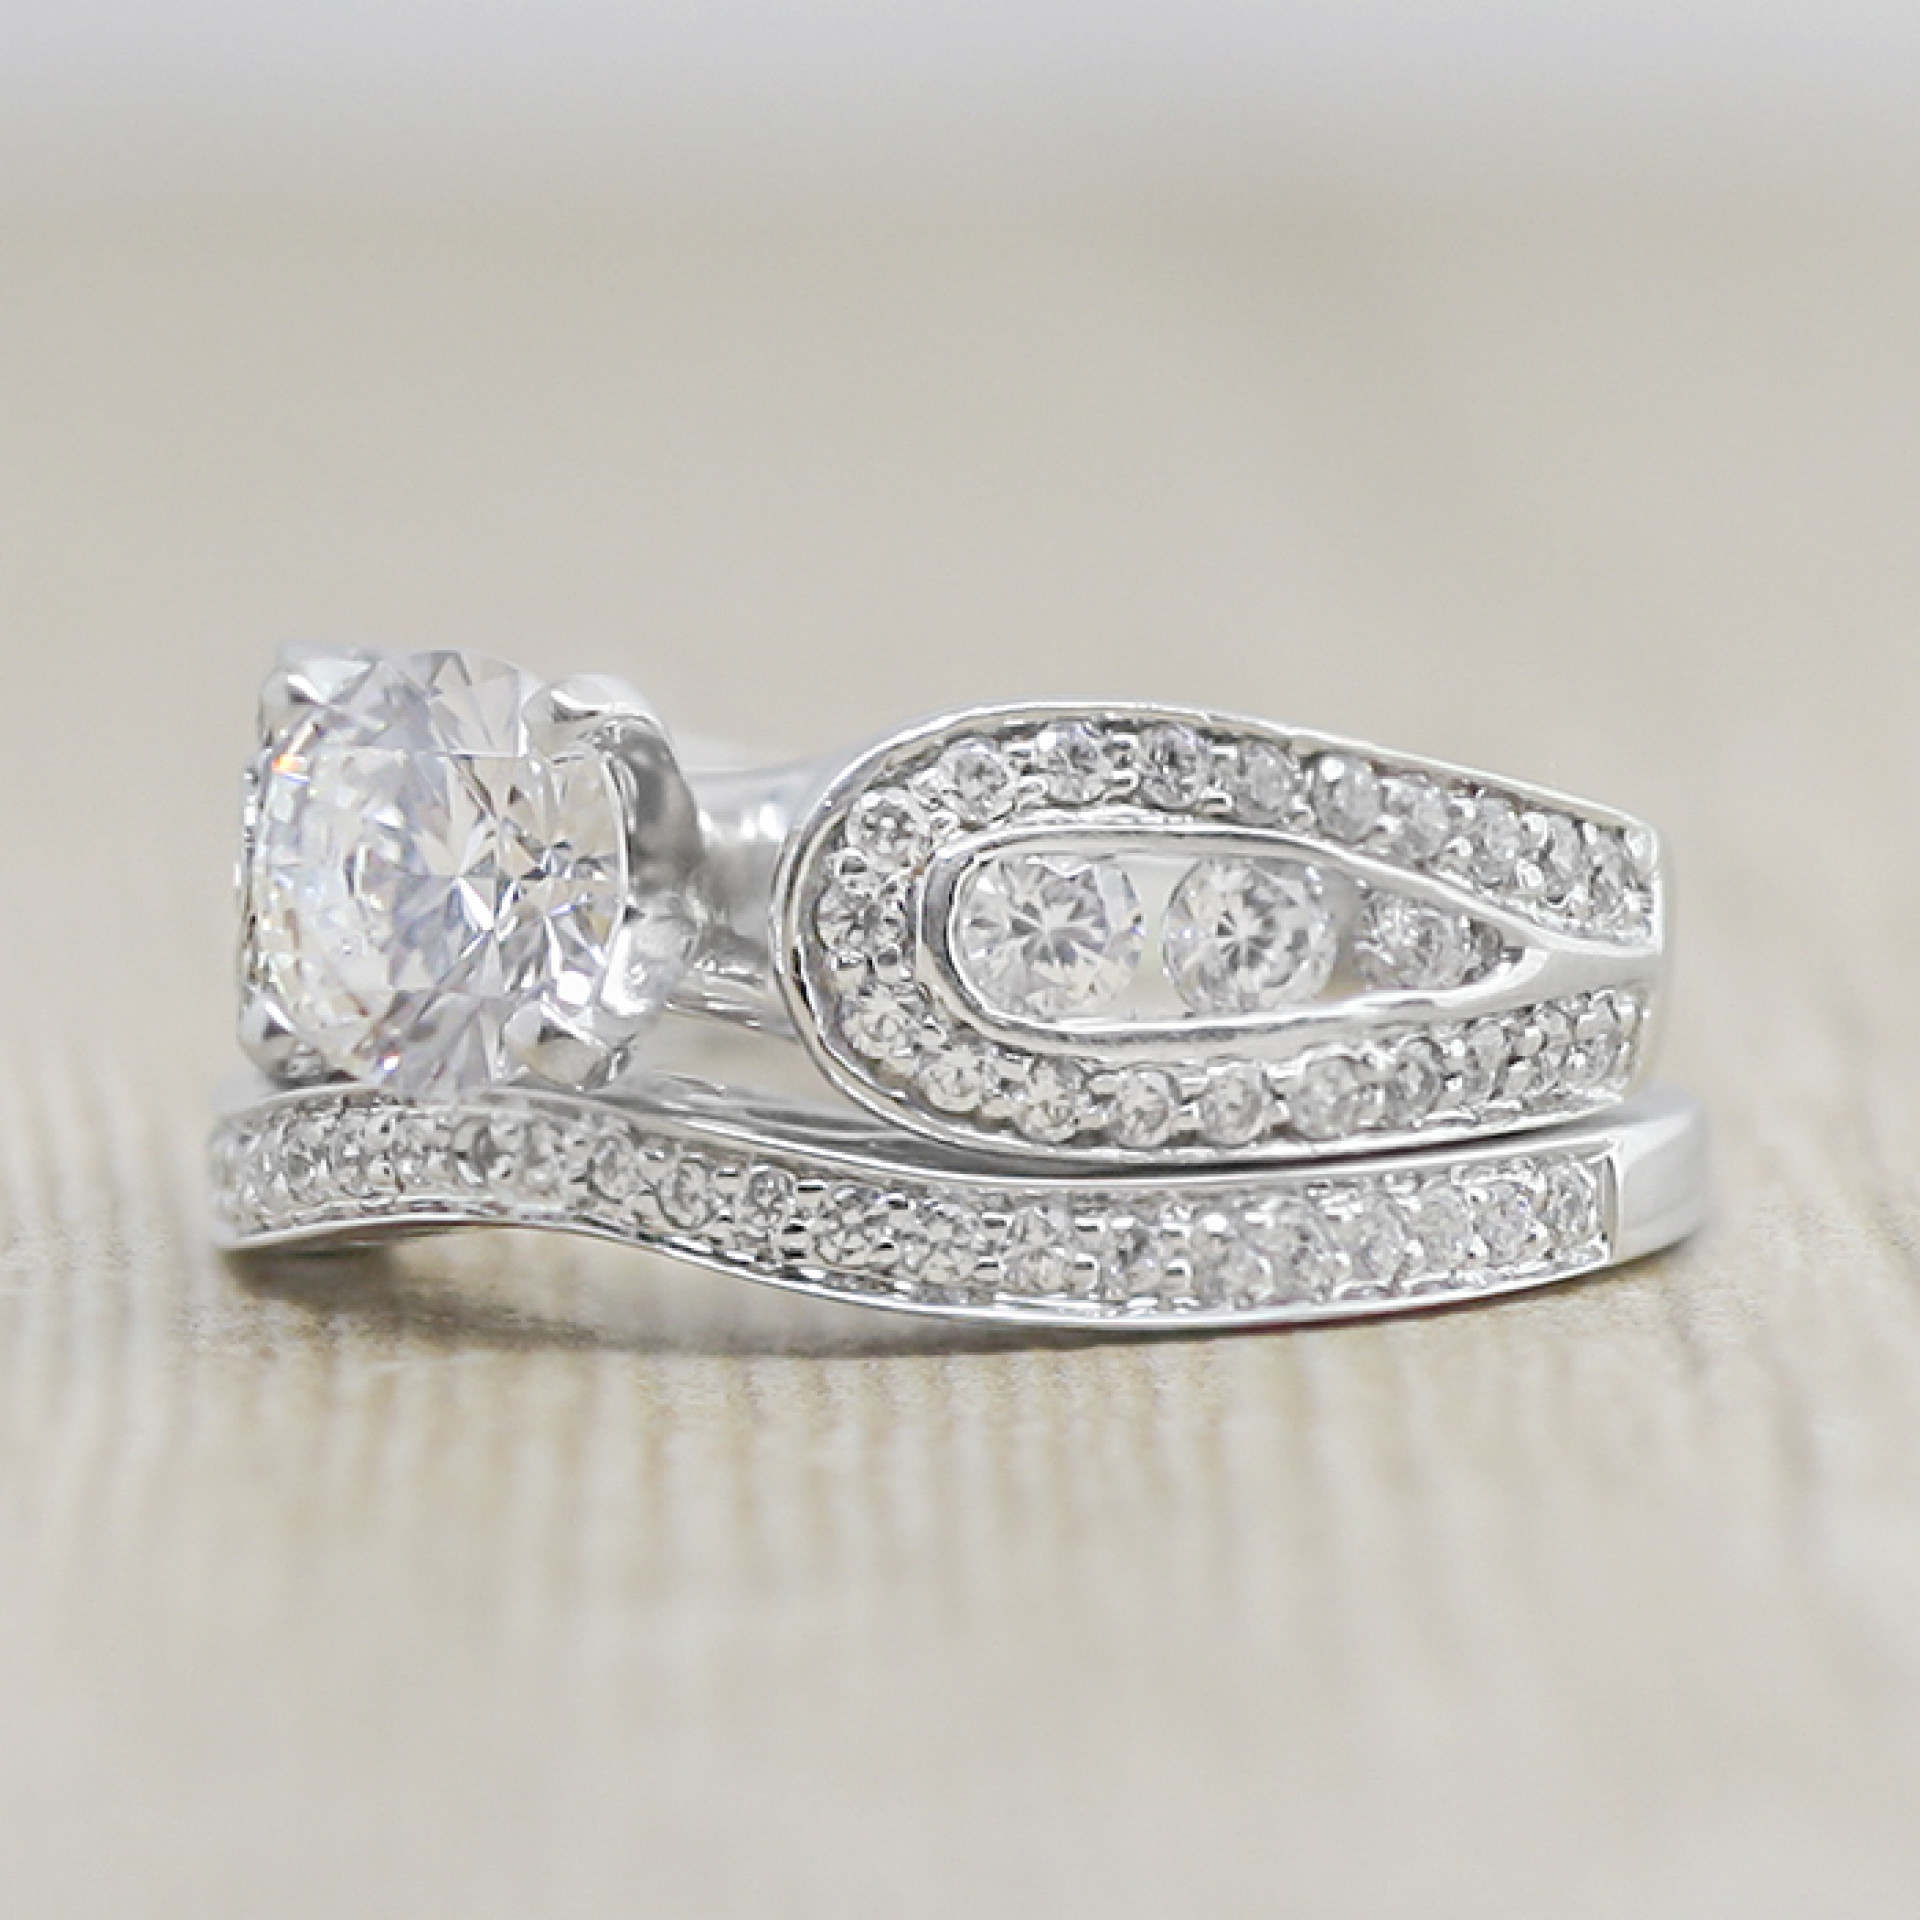 7623a76c2 Ingrid with 1.03 carat Round Brilliant Center and Matching Band - 14k White  Gold - Ring Size 7.0-8.0